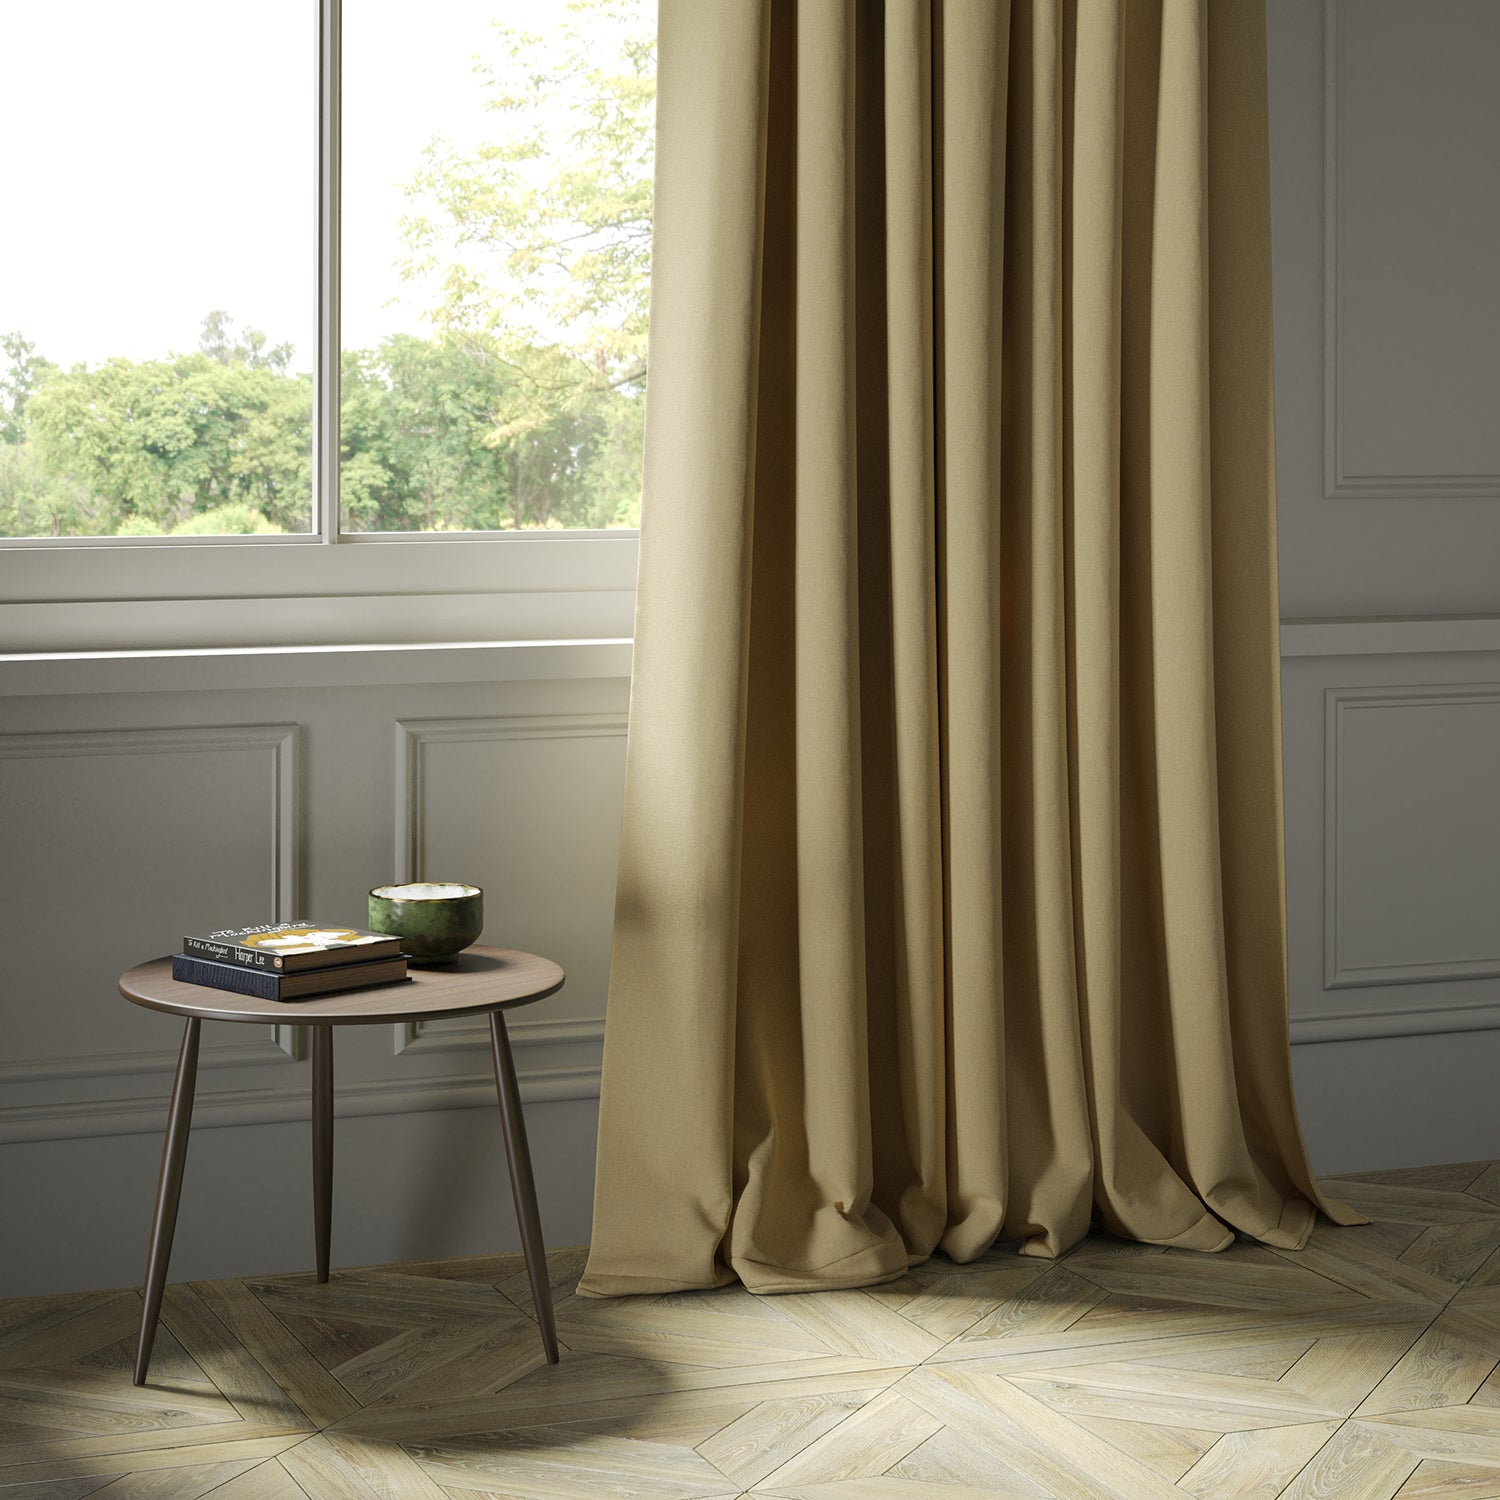 Curtains in a luxury Scottish plain golden coloured wool fabric